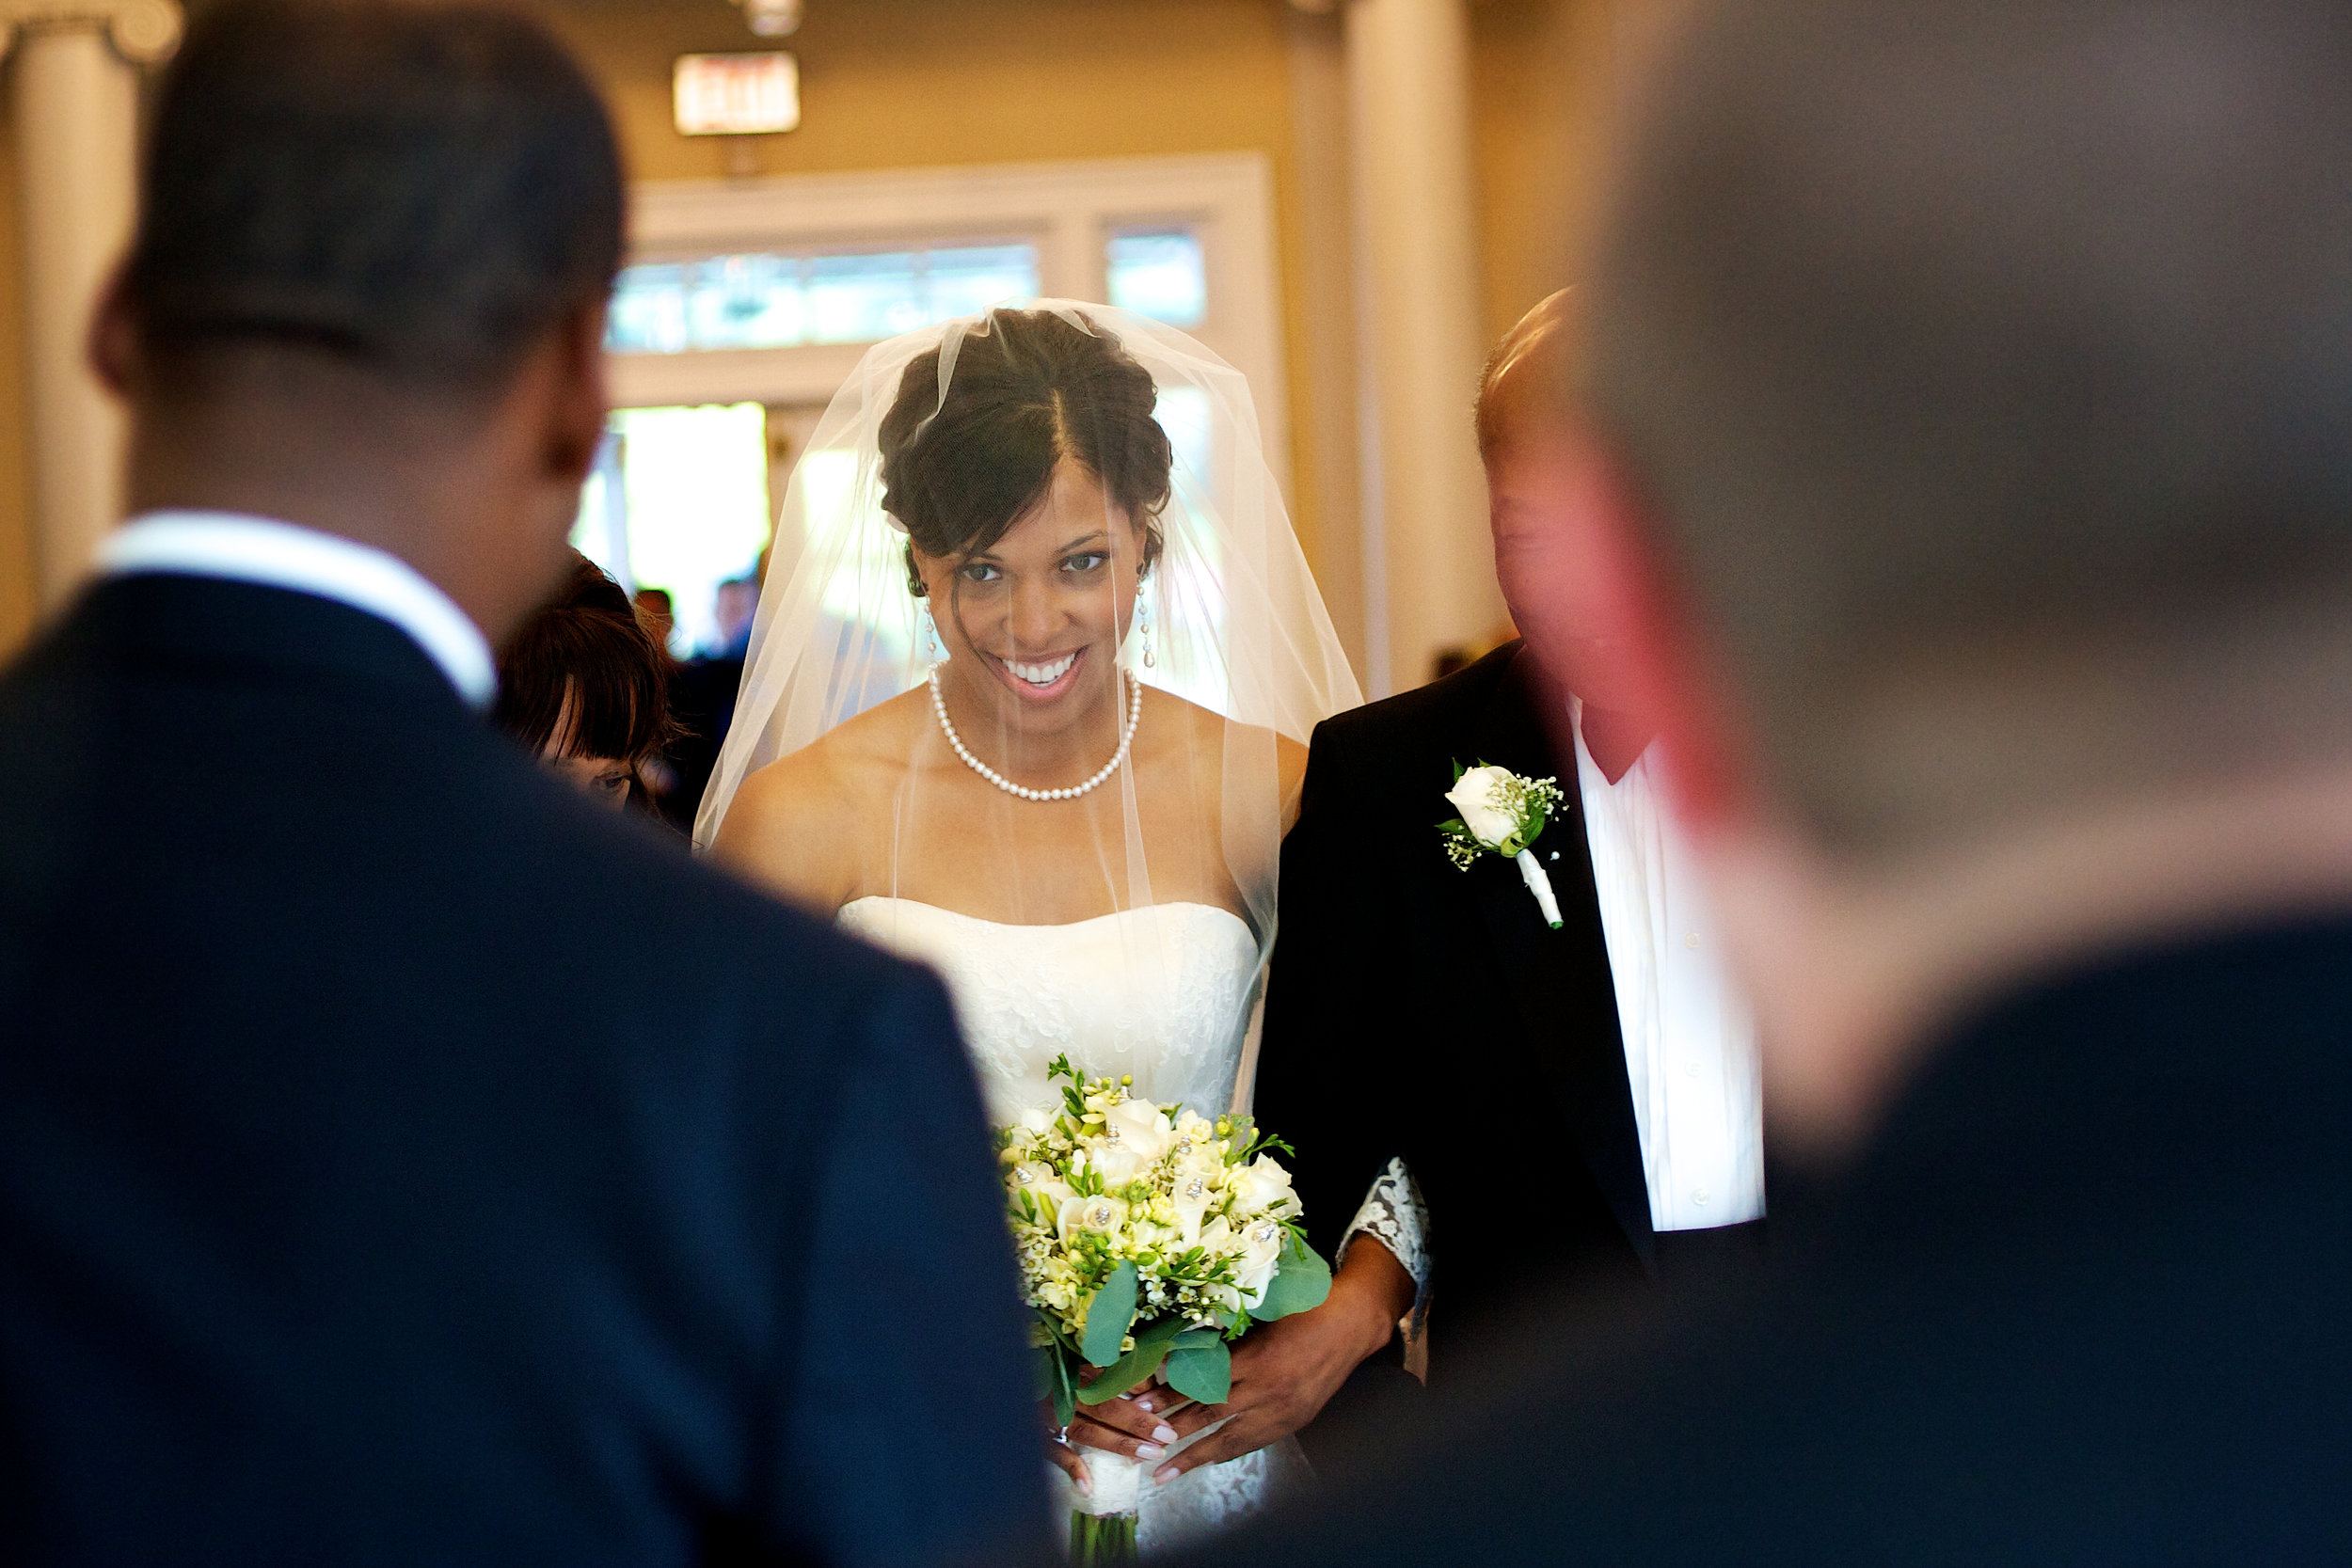 Sharla+&+Dwayne+Sterling+Wedding+-+Ceremony+-+by+StanChambersJr+Photography+045.jpg